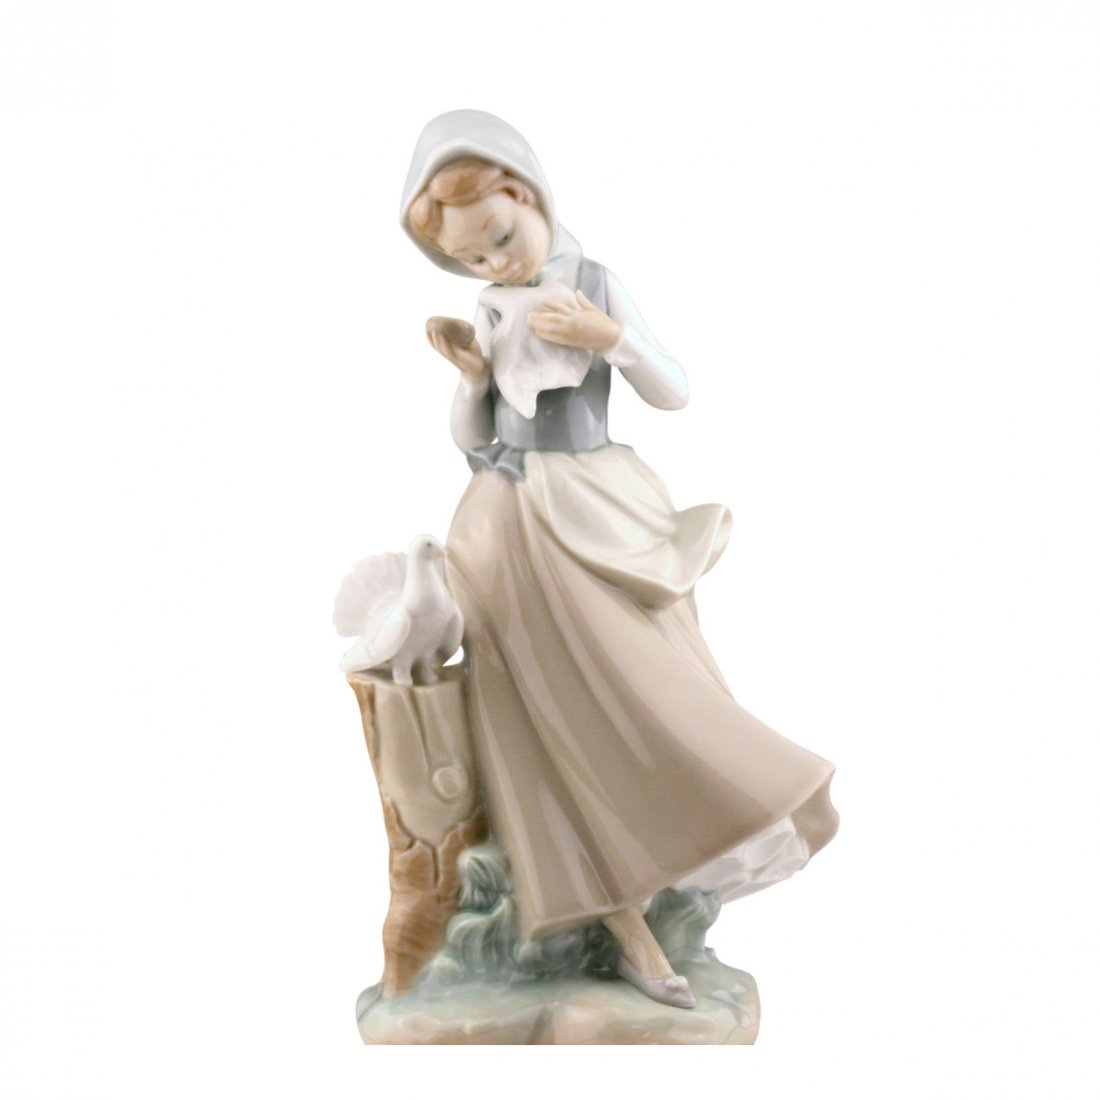 Lladro Woman With Peacock Figurine